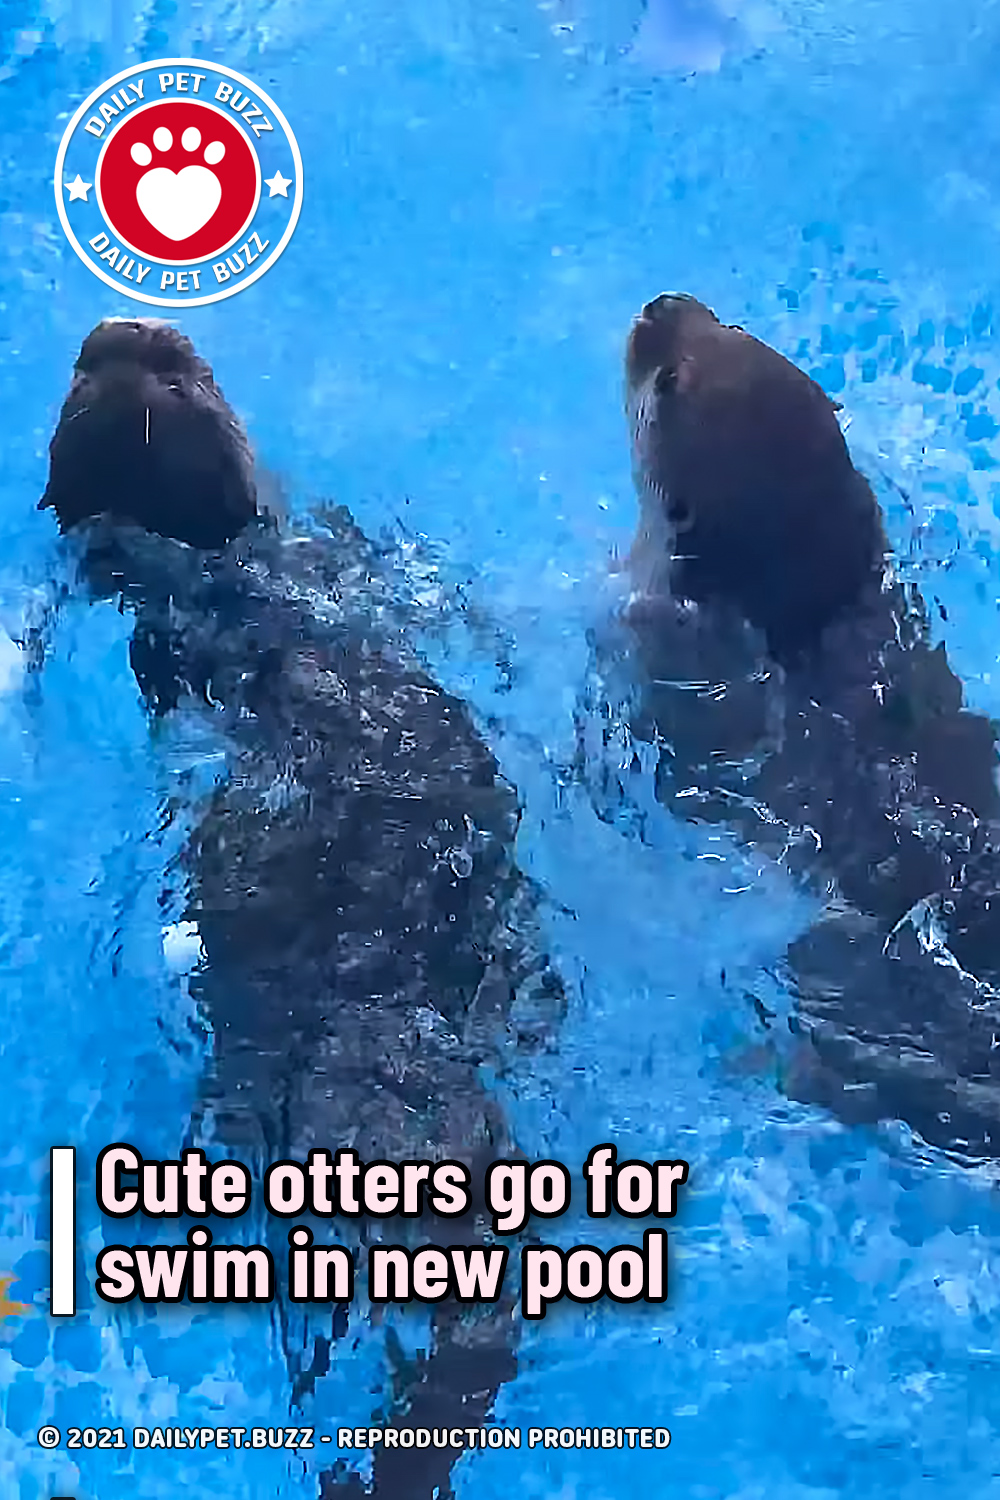 Cute otters go for swim in new pool